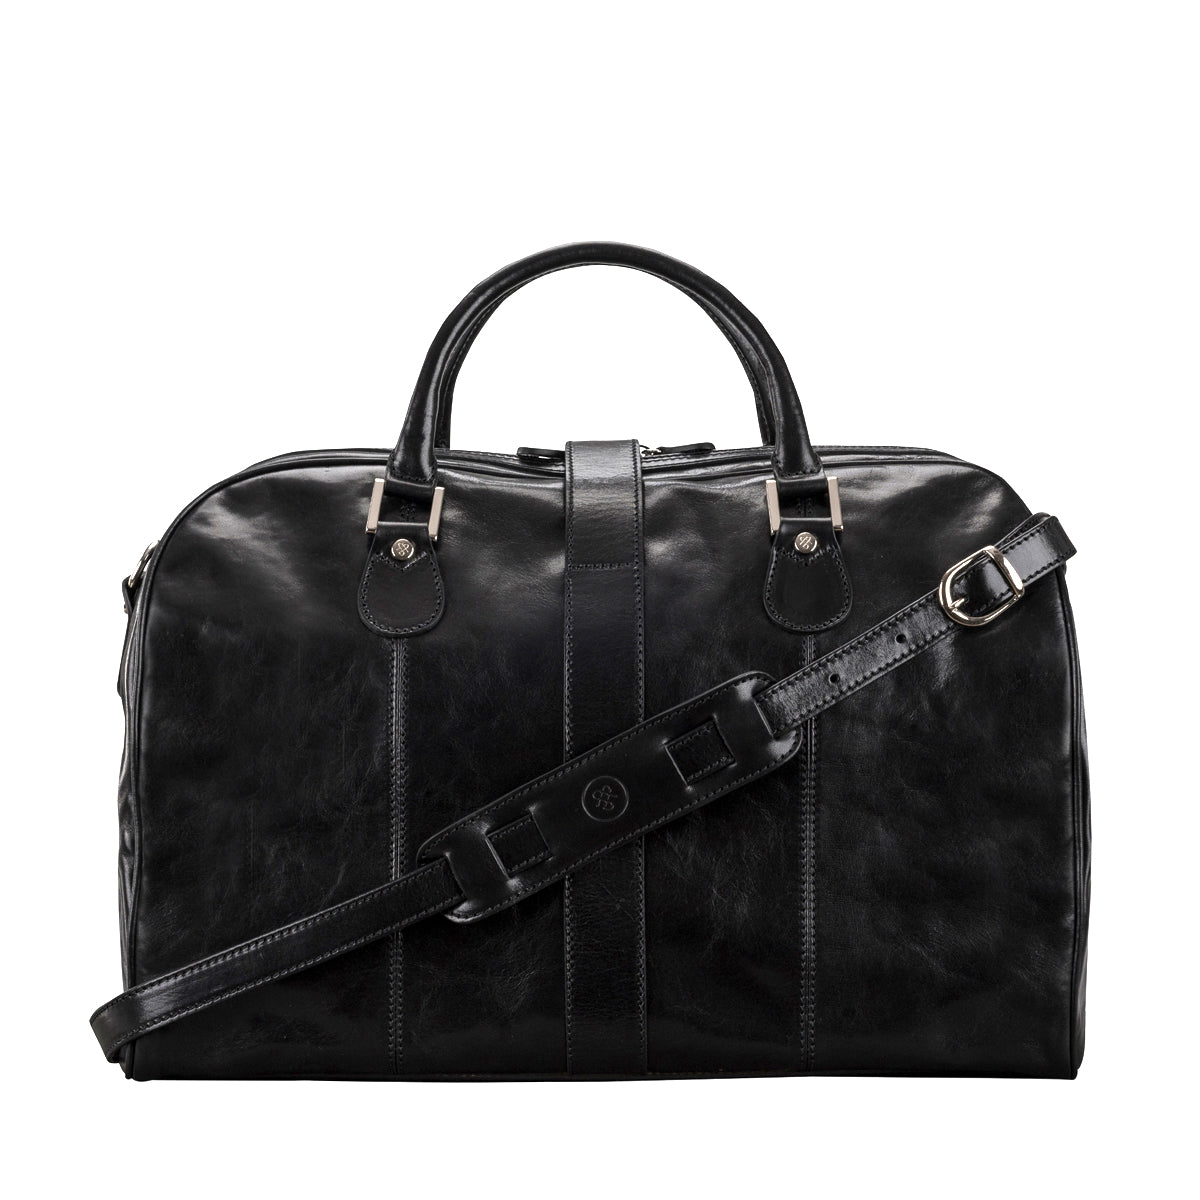 Image 4 of the 'Farini' Black Veg-Tanned Leather Luxury Hand Luggage